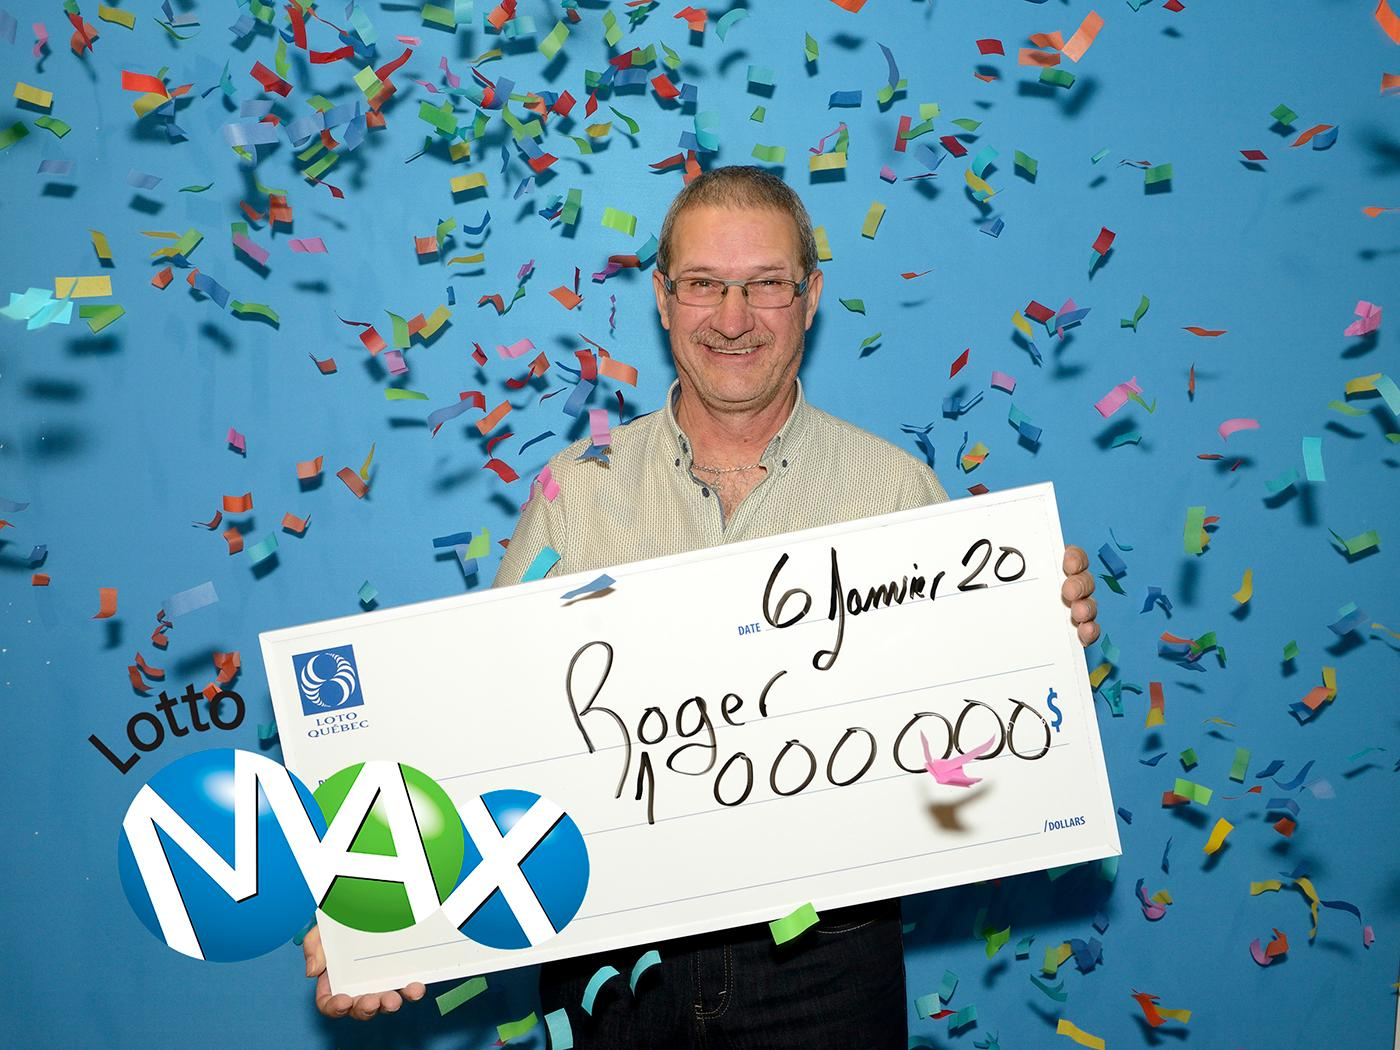 Roger Barriault, un résident du Bas-Saint-Laurent, a mis la main sur un Maxmillion, soit un lot de 1 million de dollars, lors du tirage du Lotto Max du 31 décembre.